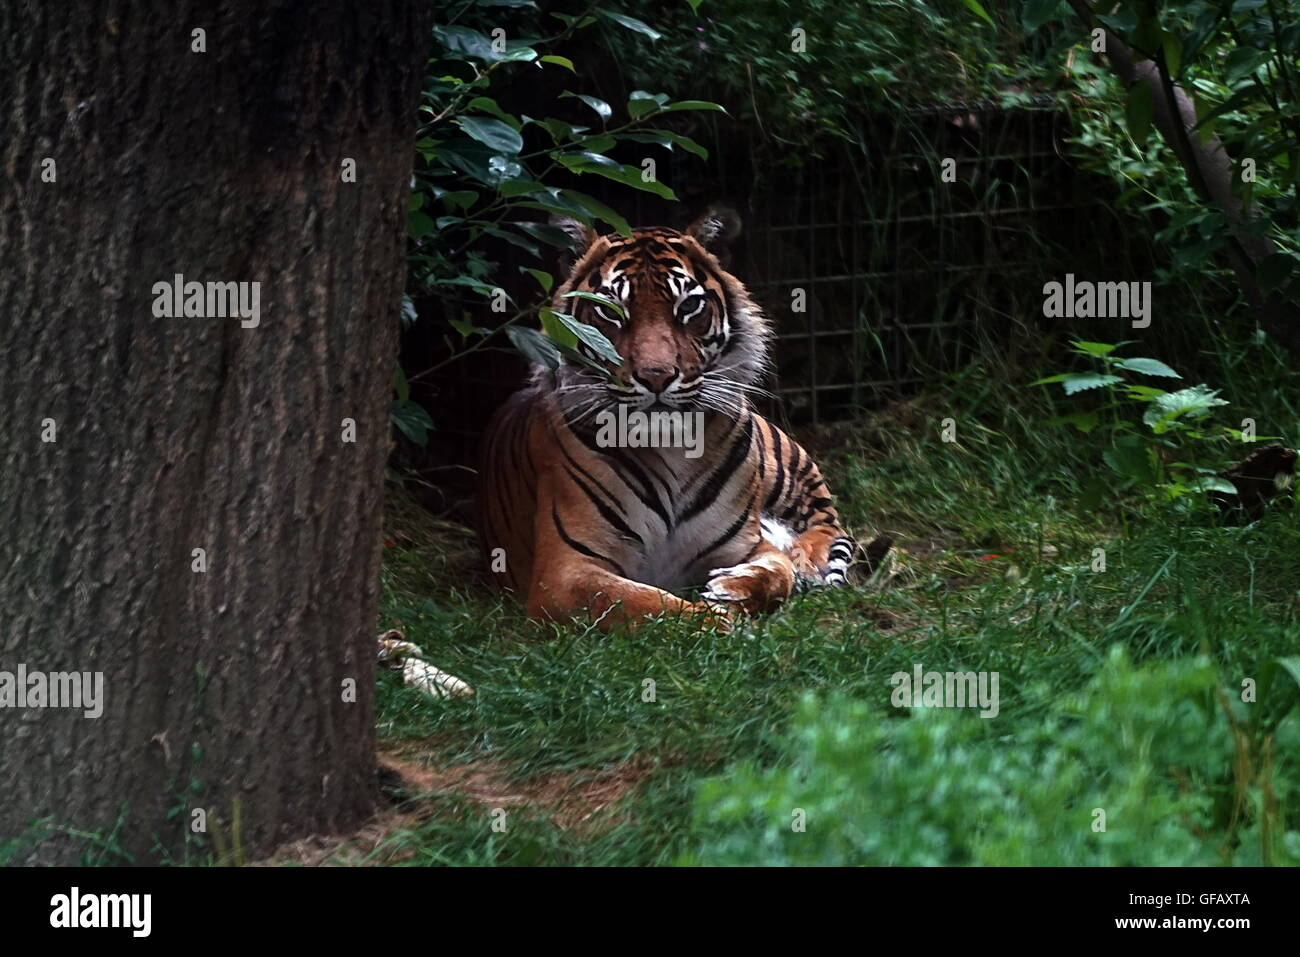 London, UK. 30th July, 2016. A Tiger at ZLS London Zoo an opening day for Little Creatures Family Festival ,England, - Stock Image